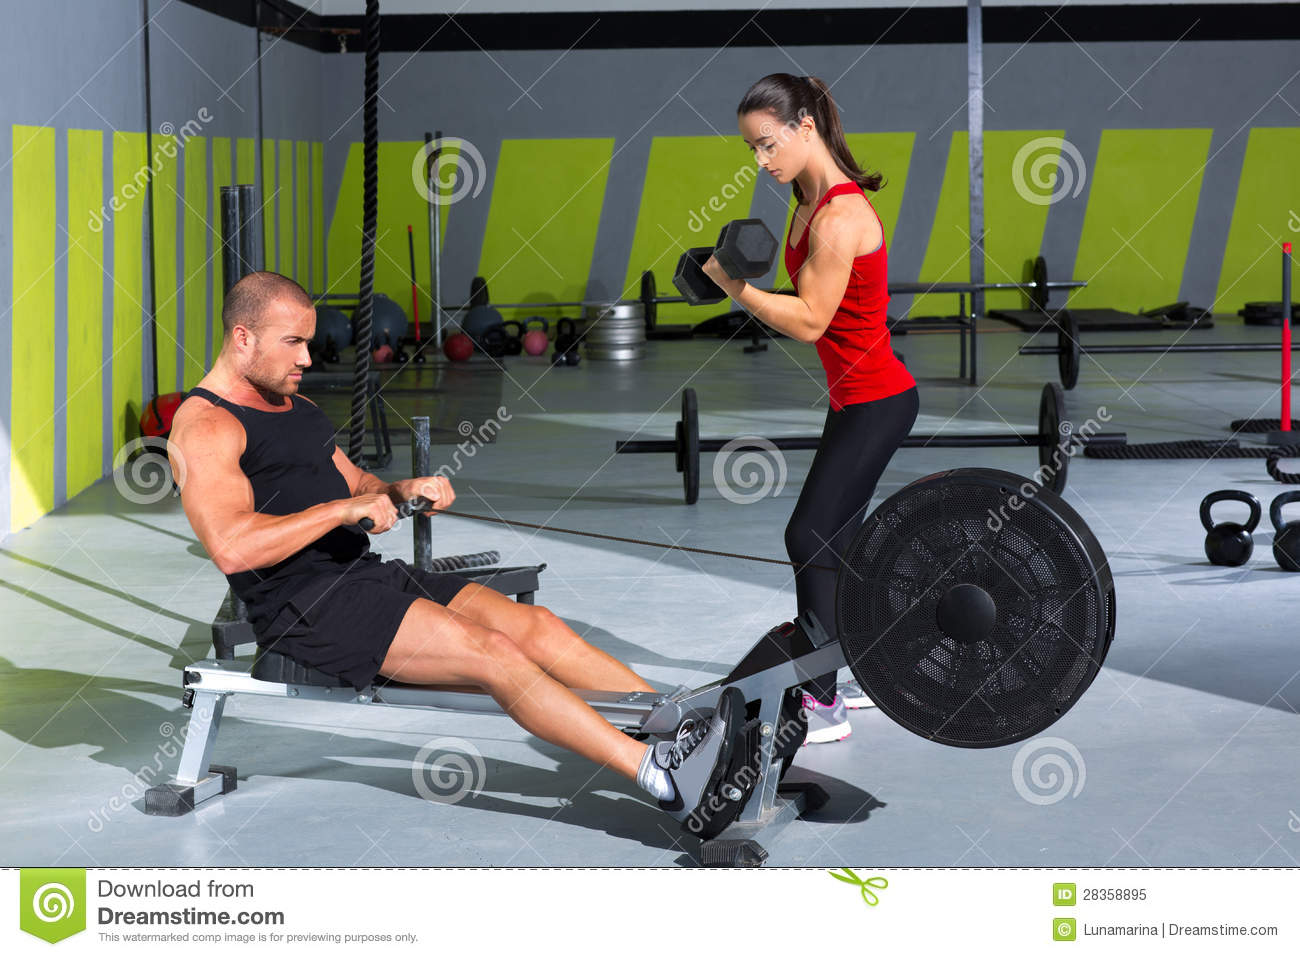 Gym Couple With Dumbbell Weights And Fitness Rower Stock